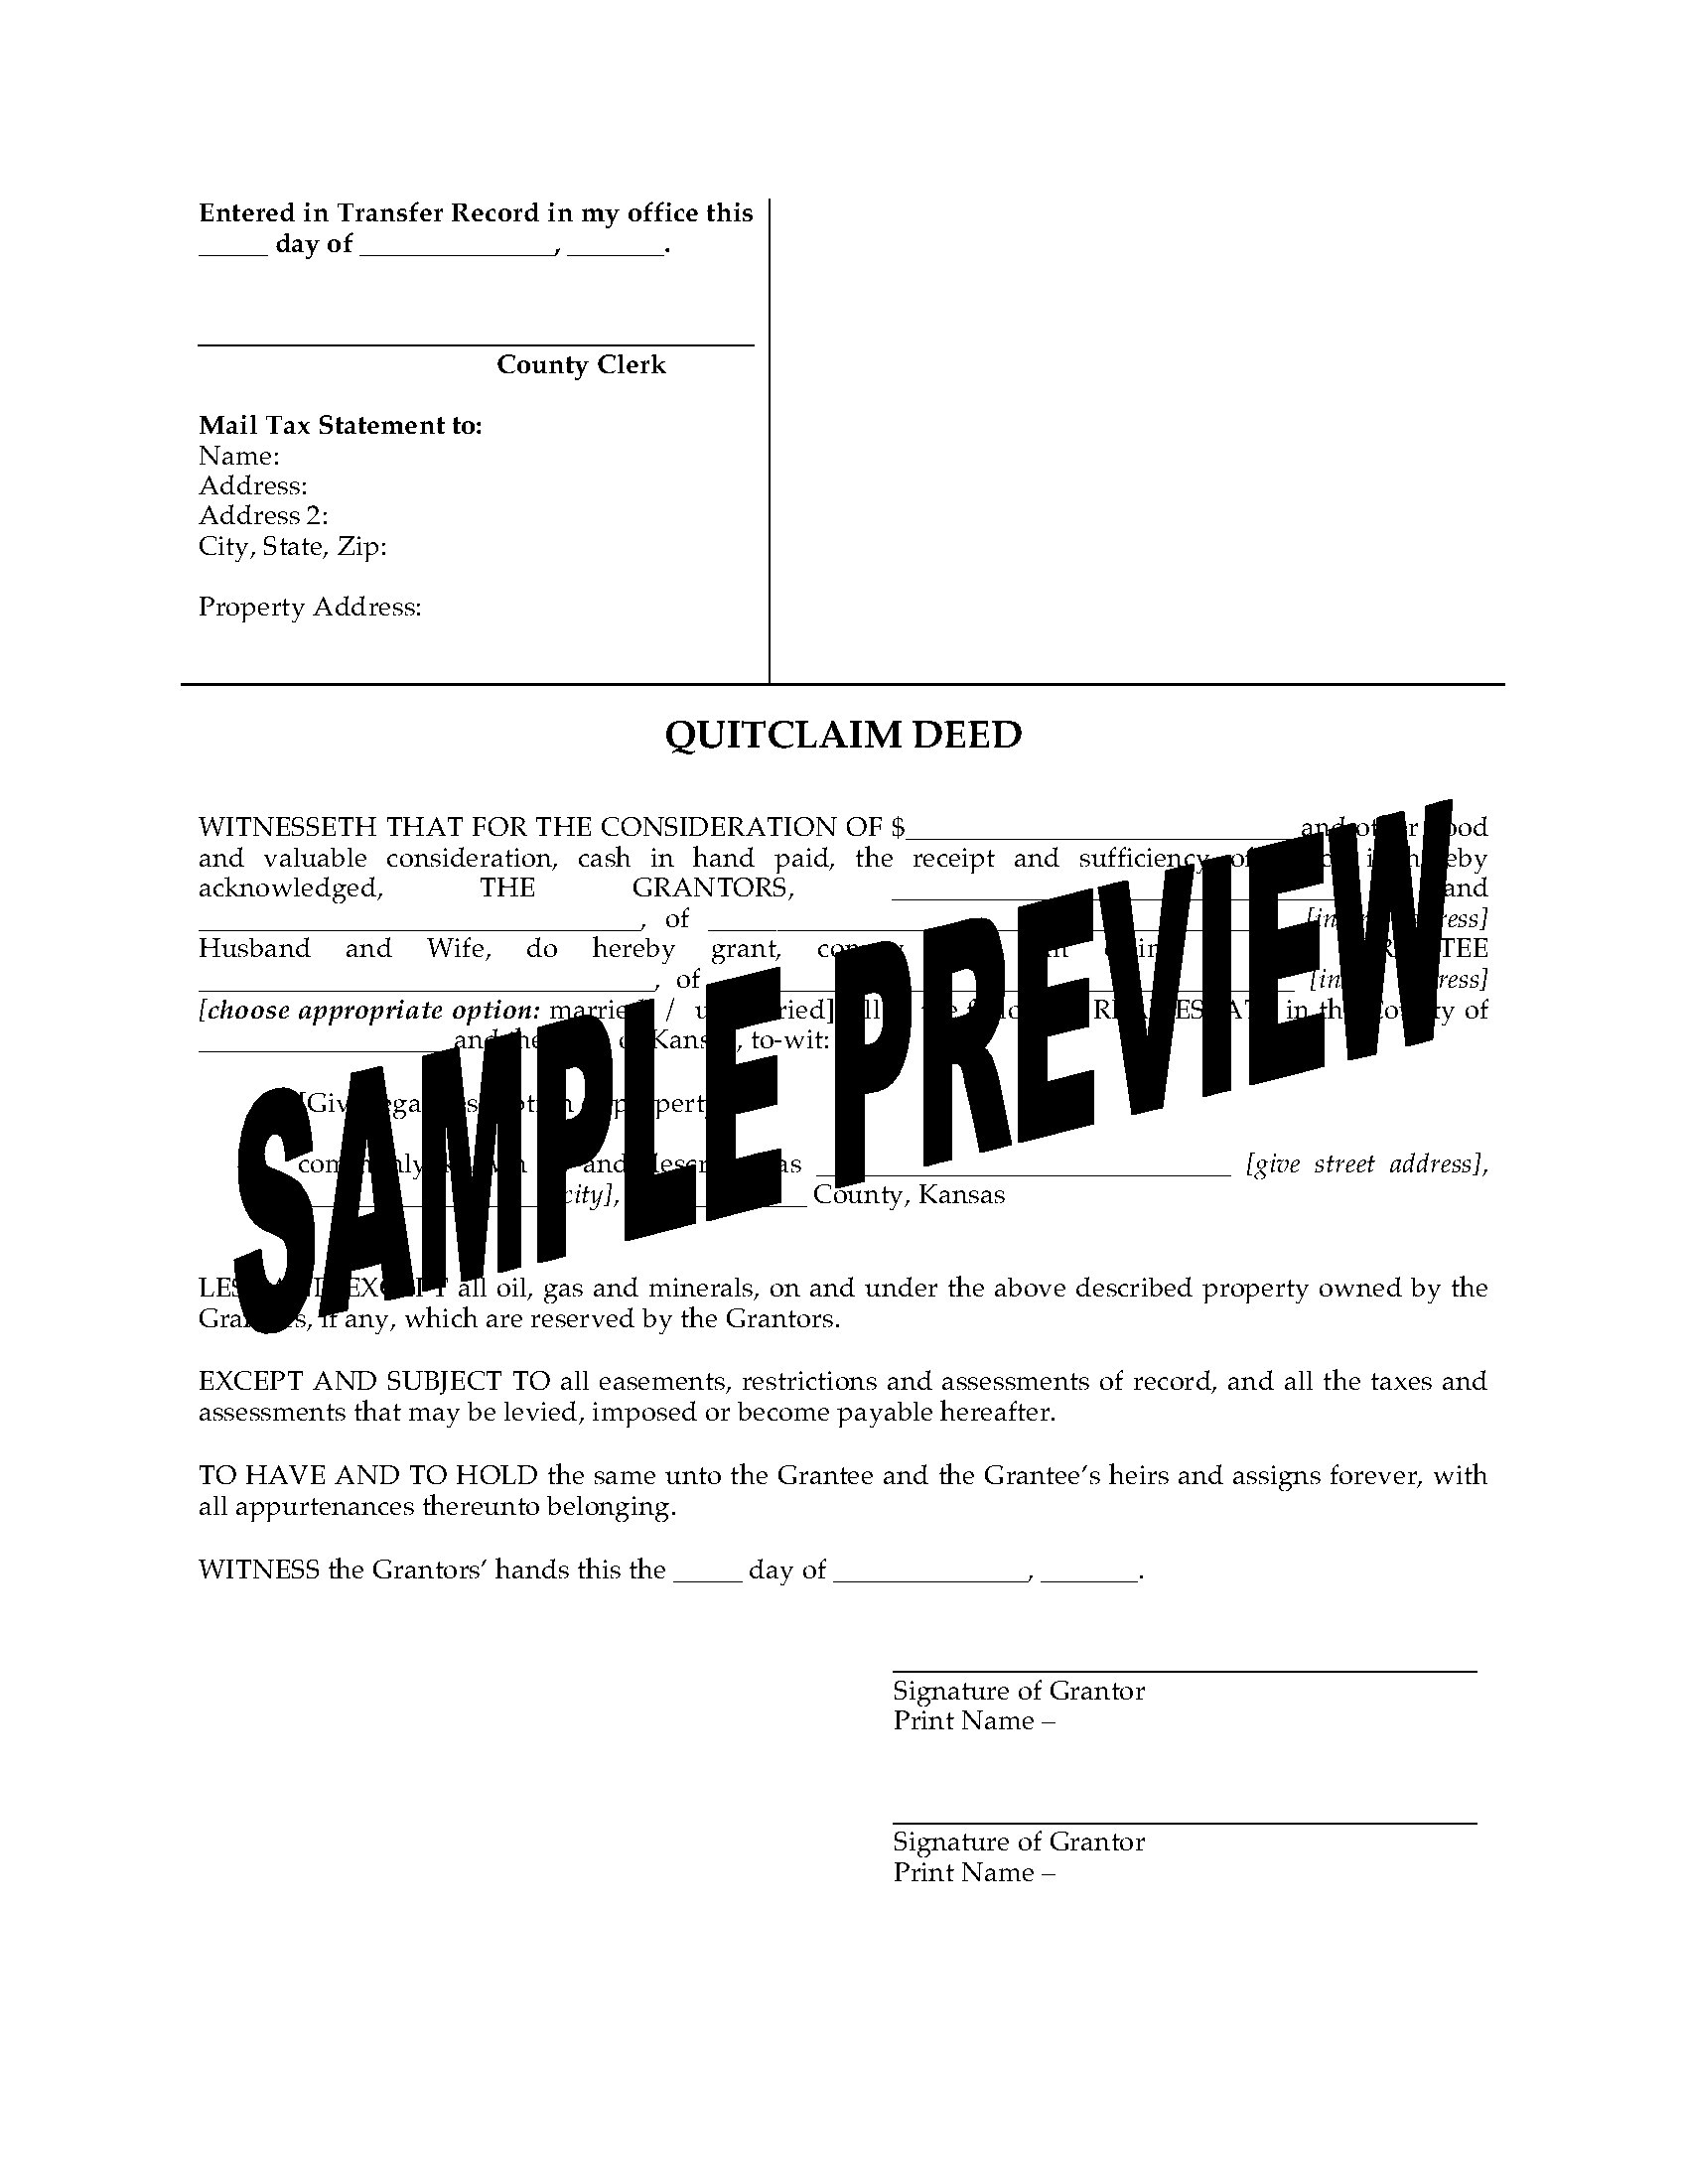 Kansas Quitclaim Deed From Husband And Wife To Individual Legal - Kansas legal forms